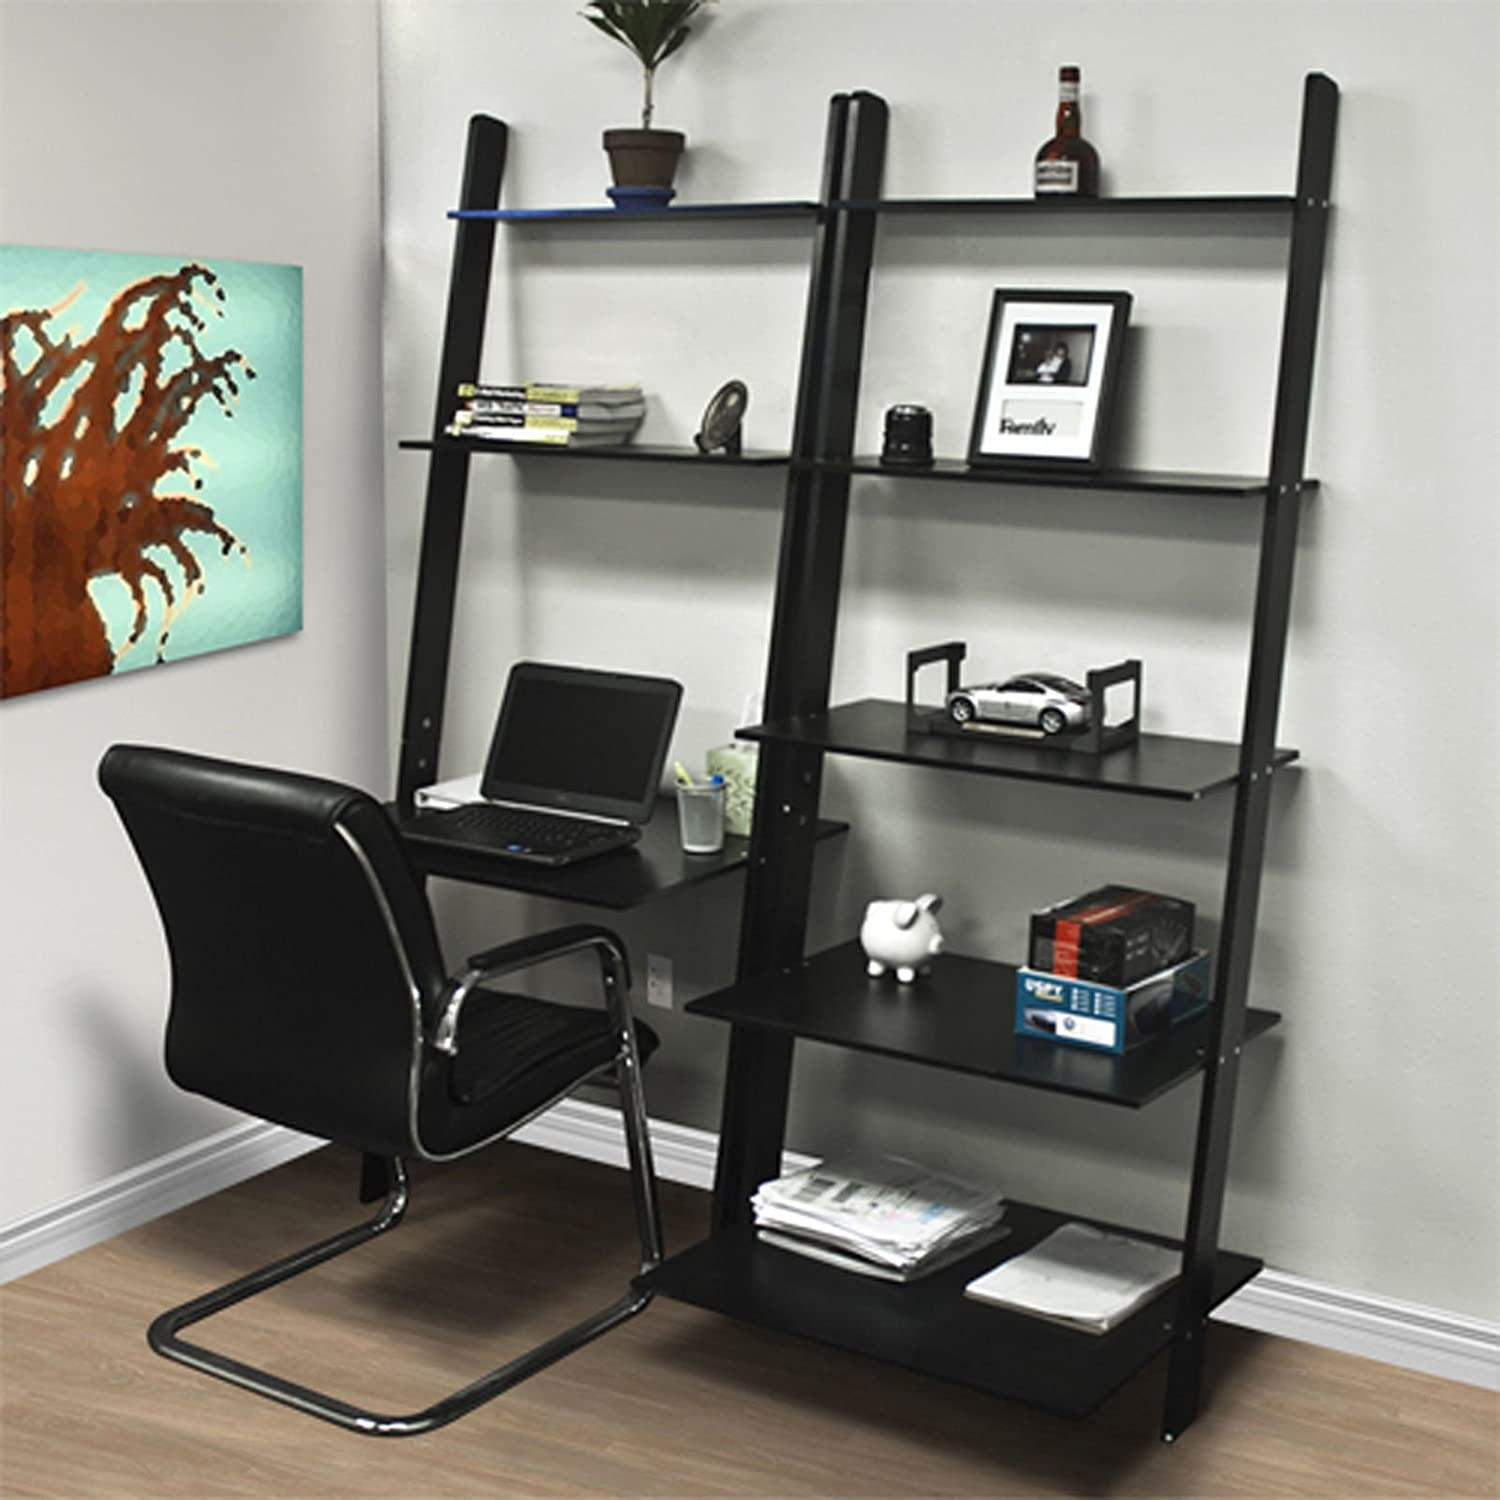 Amazon.com: AUEY Leaning Shelf Bookcase with Computer Desk ... on home library with ladder, home office furniture ideas, home office desk with drawers, home office furniture design, girls loft bunk beds with desk, home office bookcase with ladder, home office desk furniture wood, home office wall units with desk,